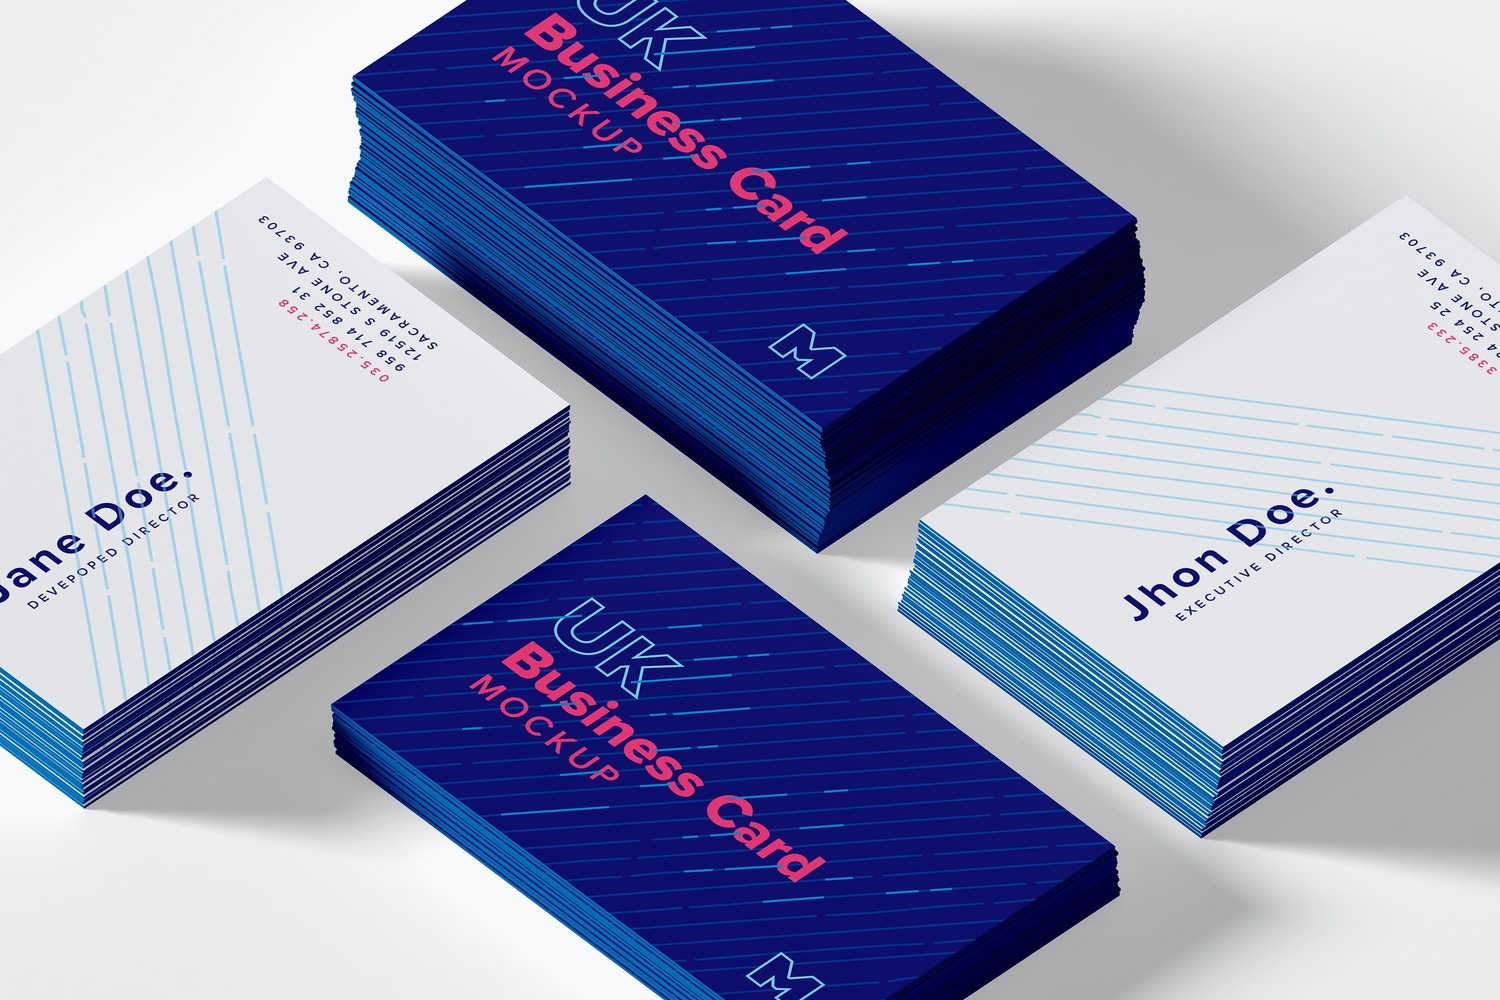 UK Business Cards Mockup 07 by Original Mockups on Original Mockups